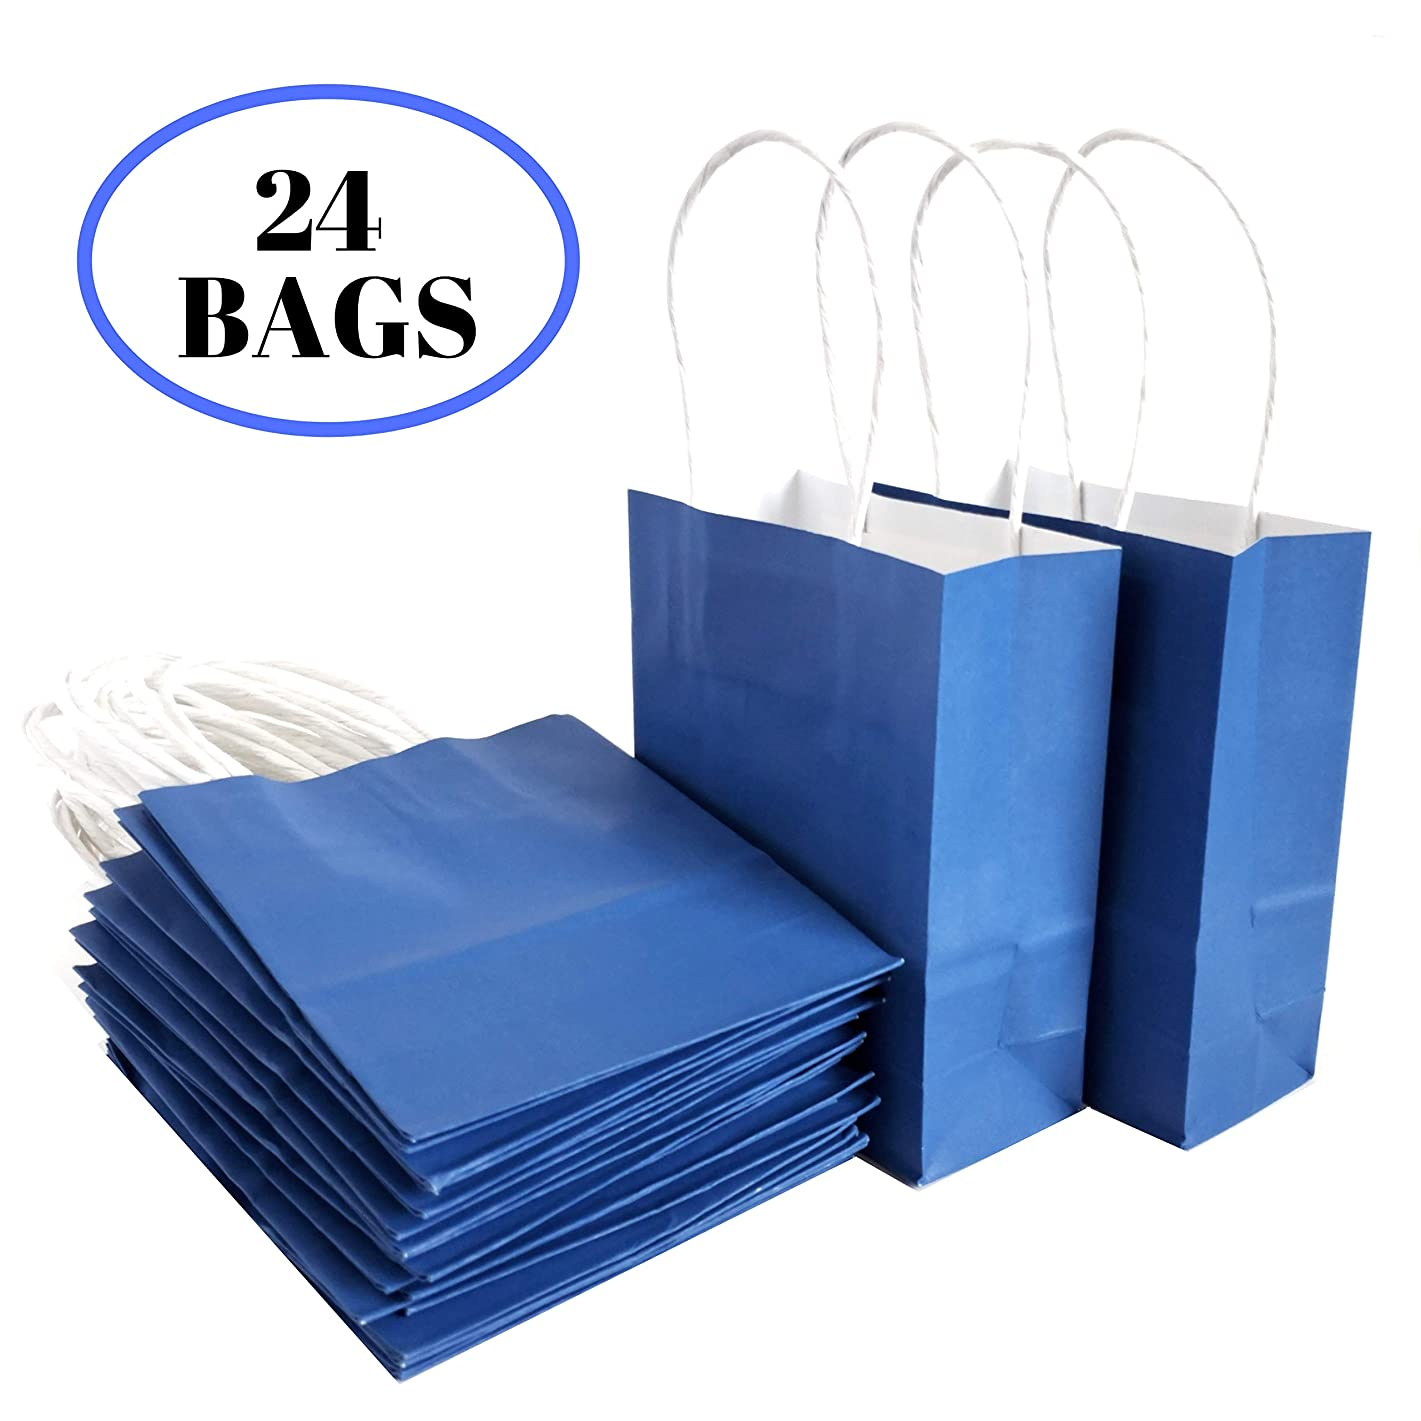 """Kelkaa Party Kraft Paper Bags – 24pcs 4.5X2.5X5.5"""" Gift Bags with Handles for Birthday, Wedding Party Favors, Bachelorette Party, Paper Tote Bags, Party Themes - Mini Royal Blue"""